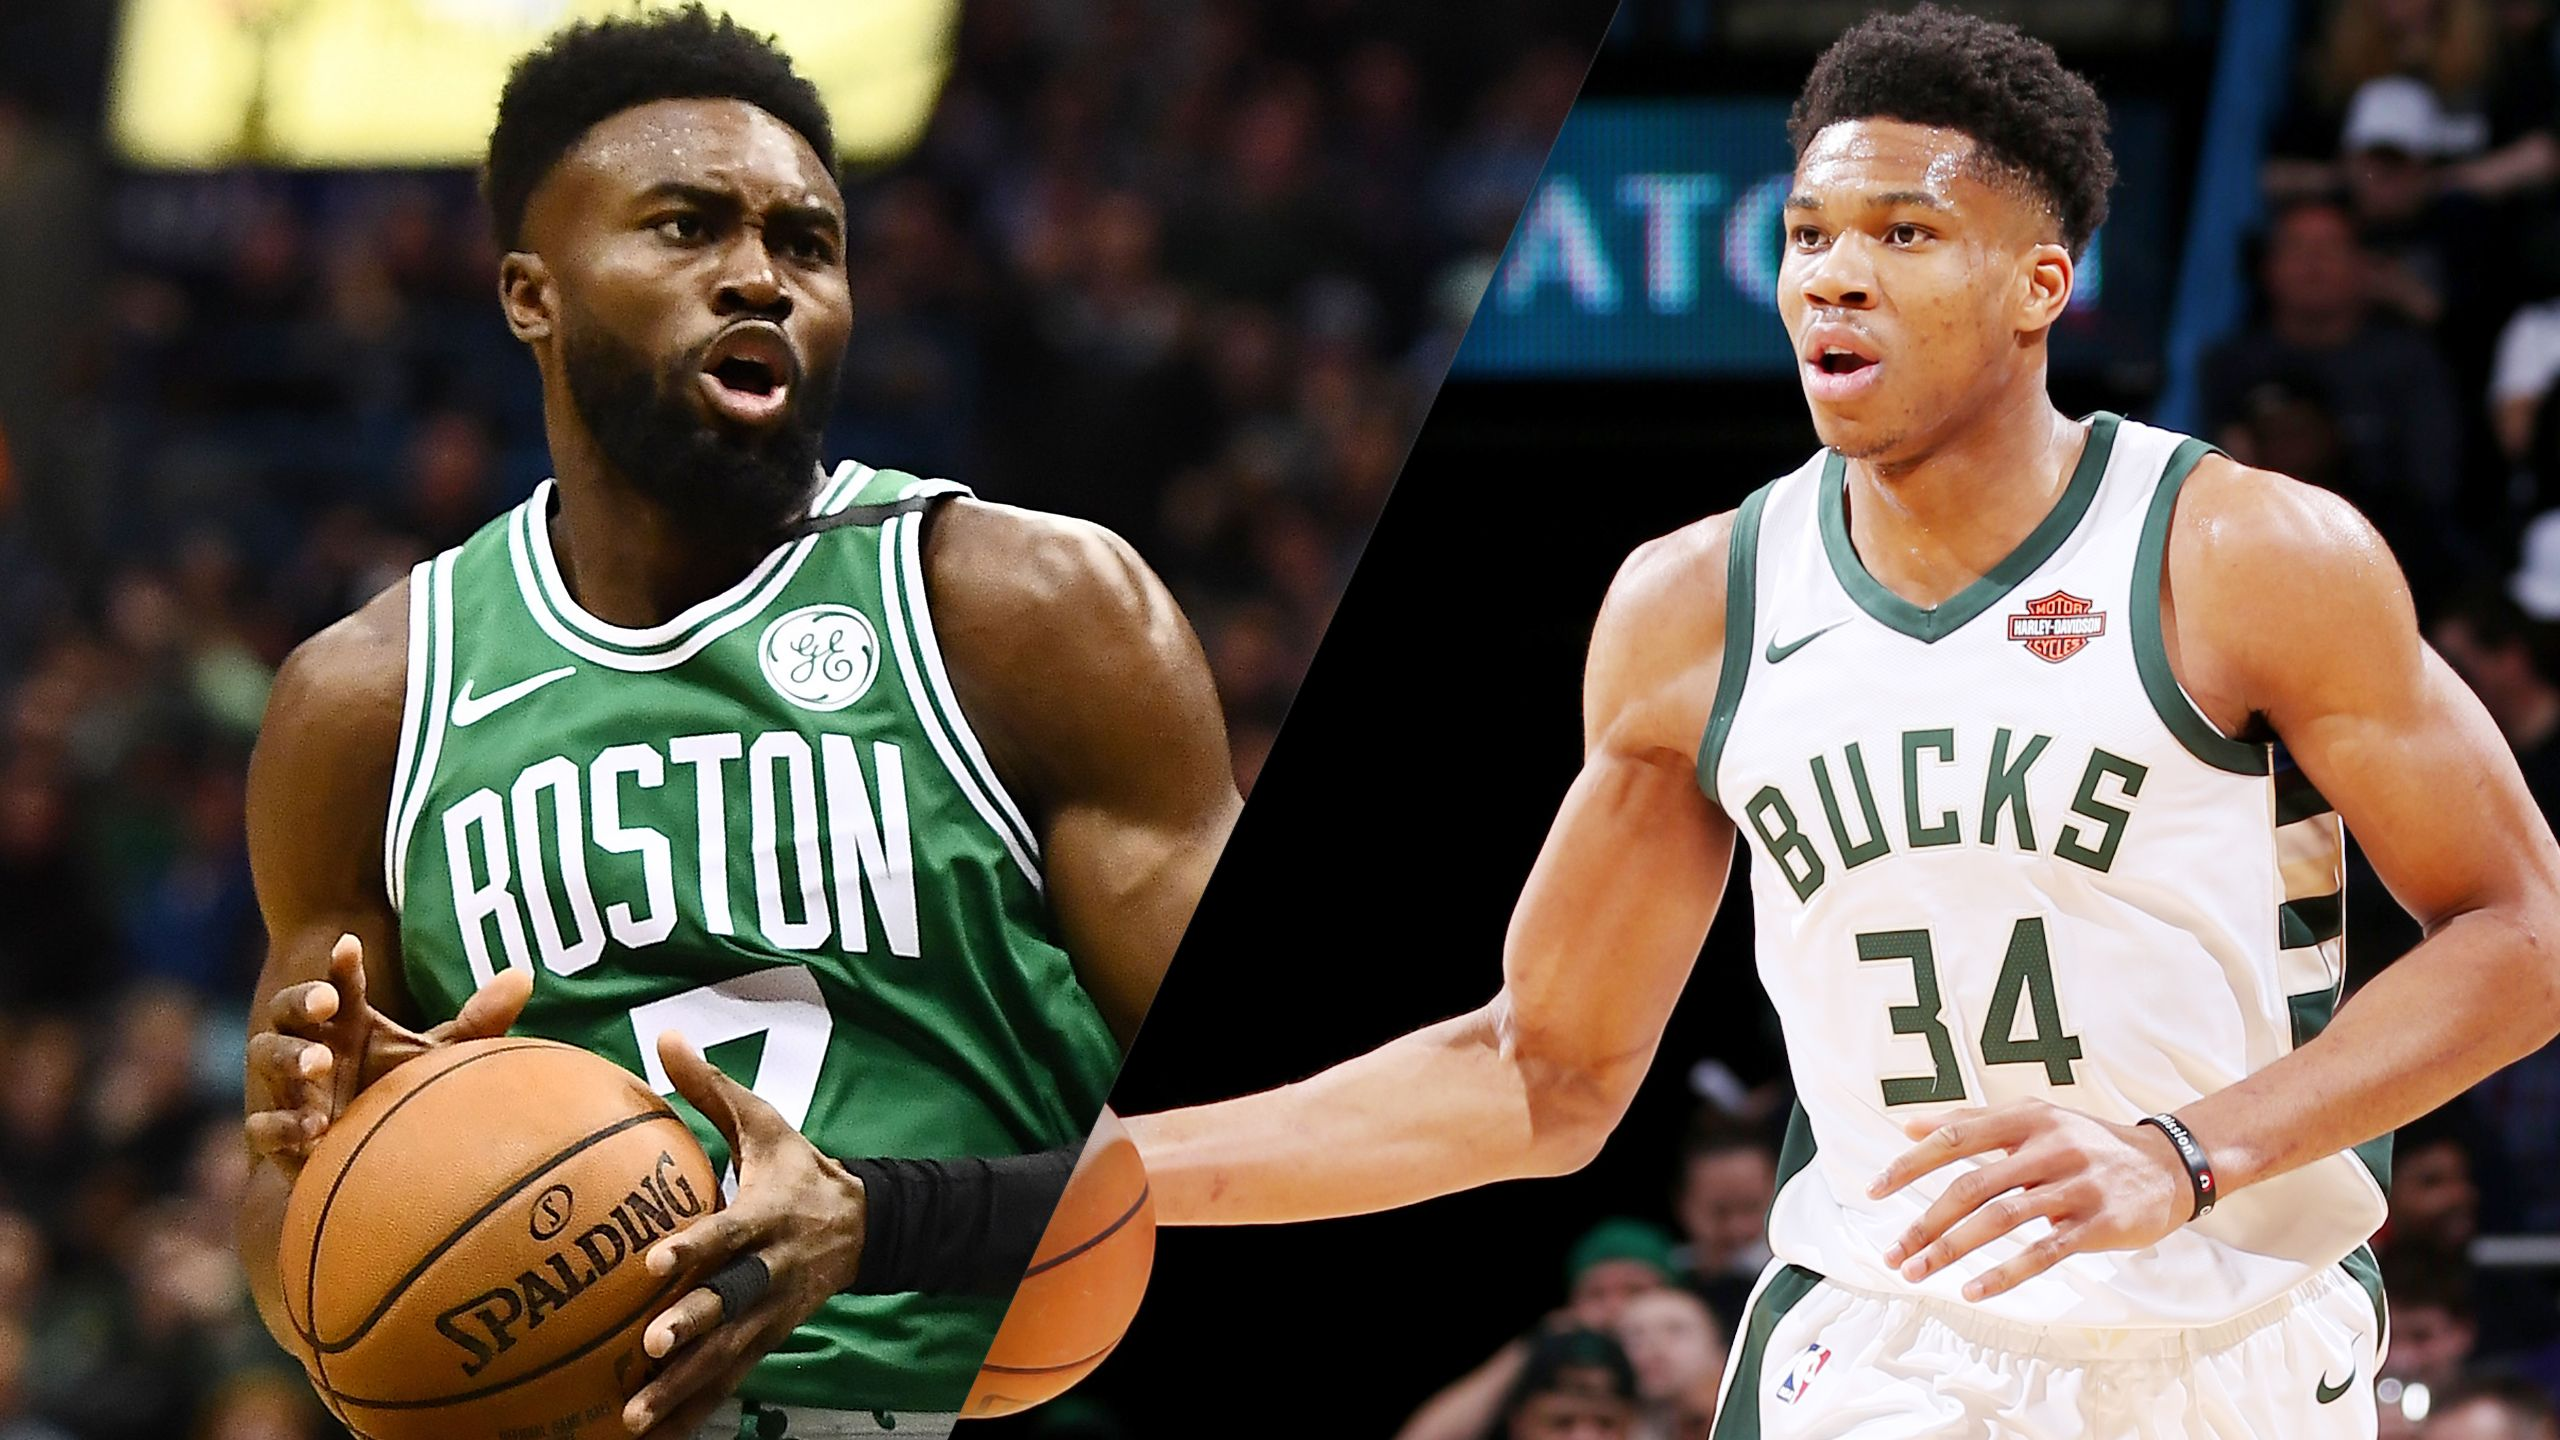 Boston Celtics vs. Milwaukee Bucks (First Round, Game 4) (re-air)